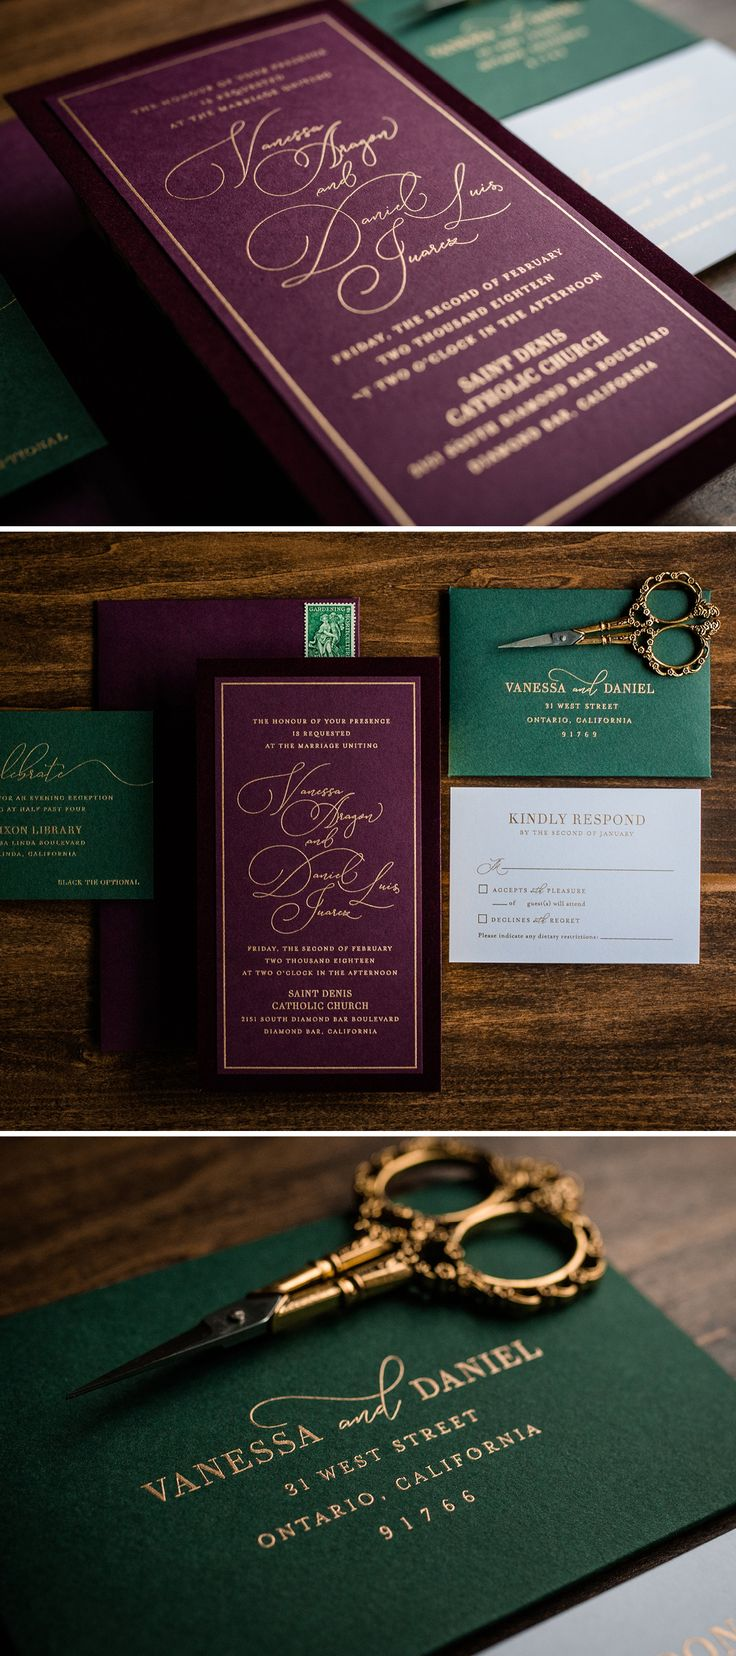 sister marriage invitation letter format%0A Jewel Toned Velvet Wedding Invitation by Penn  u     Paperie  Unique invitation  with velvet fabric